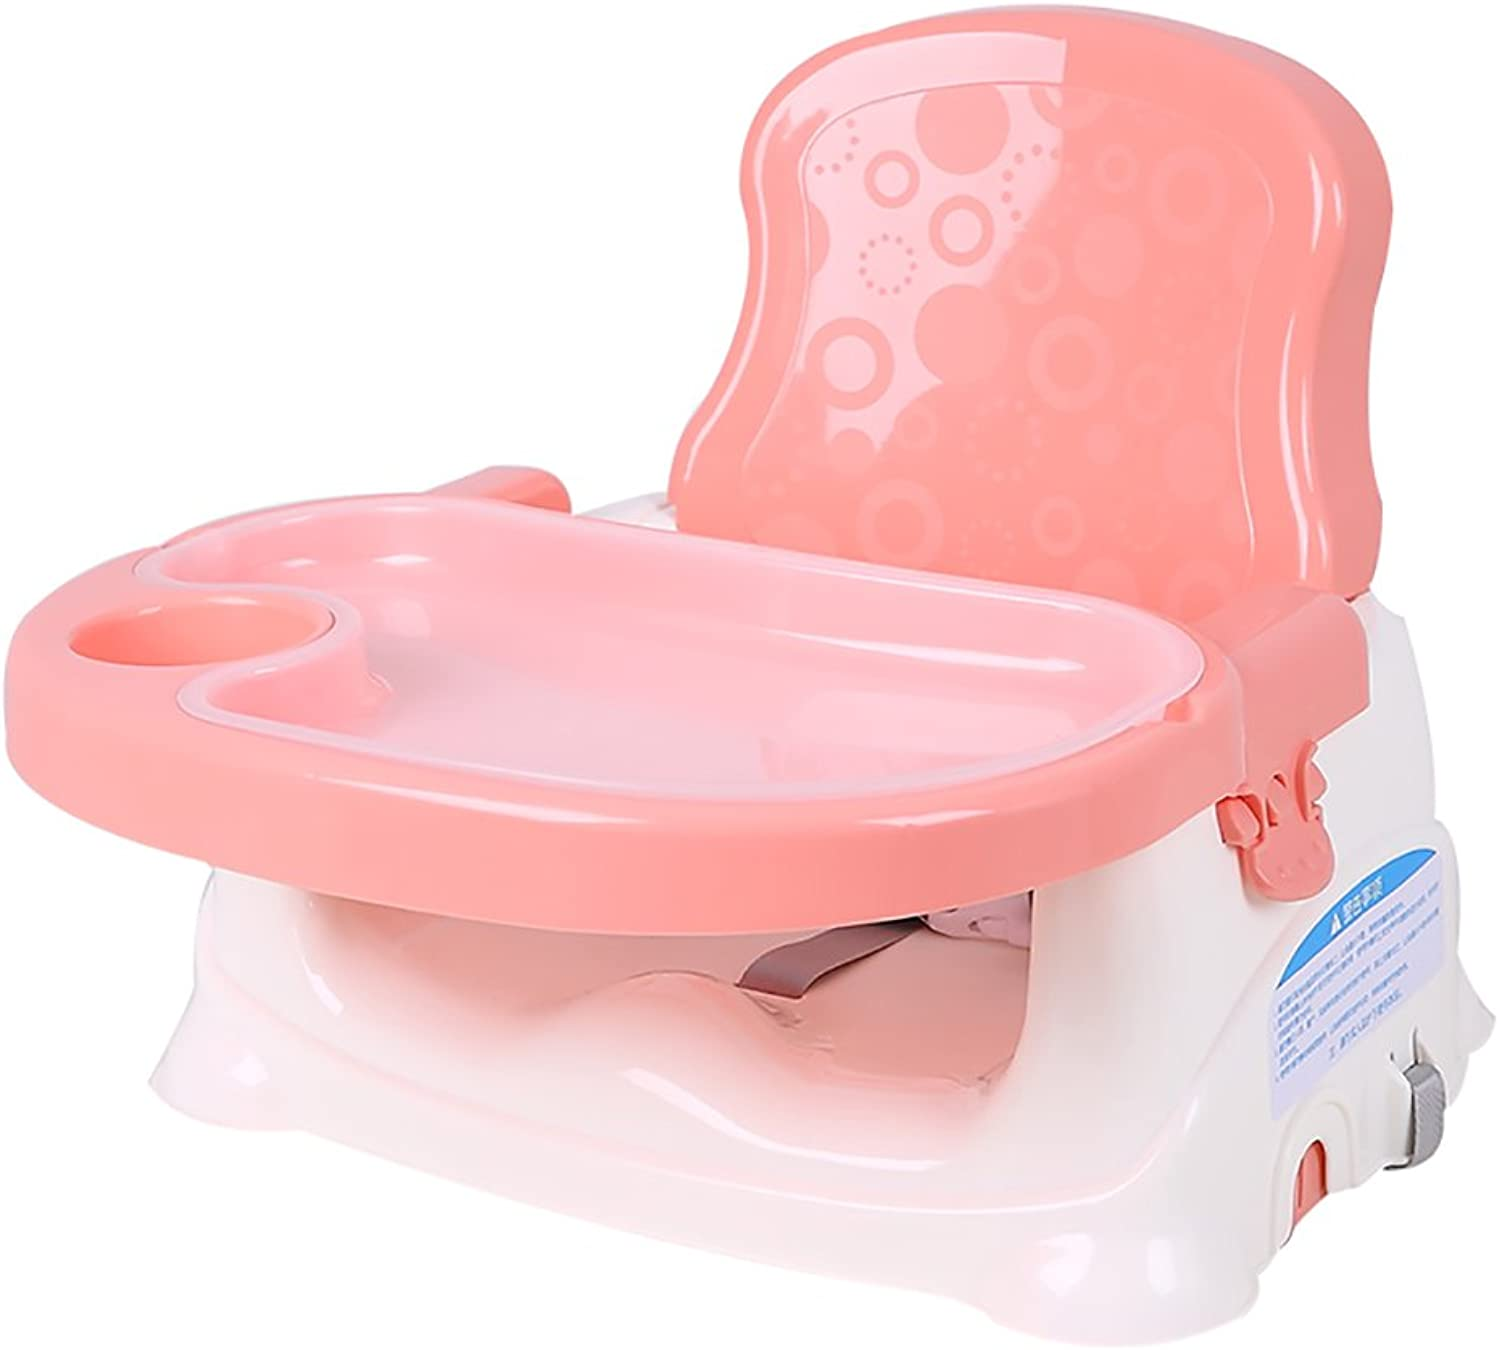 Baby Healthy Care Booster Seat, Multi-Functional Portable Folding Infant Base 2-in-1 Seat, On The Go Booster Seat Witth Dining Table Best Gift Toy